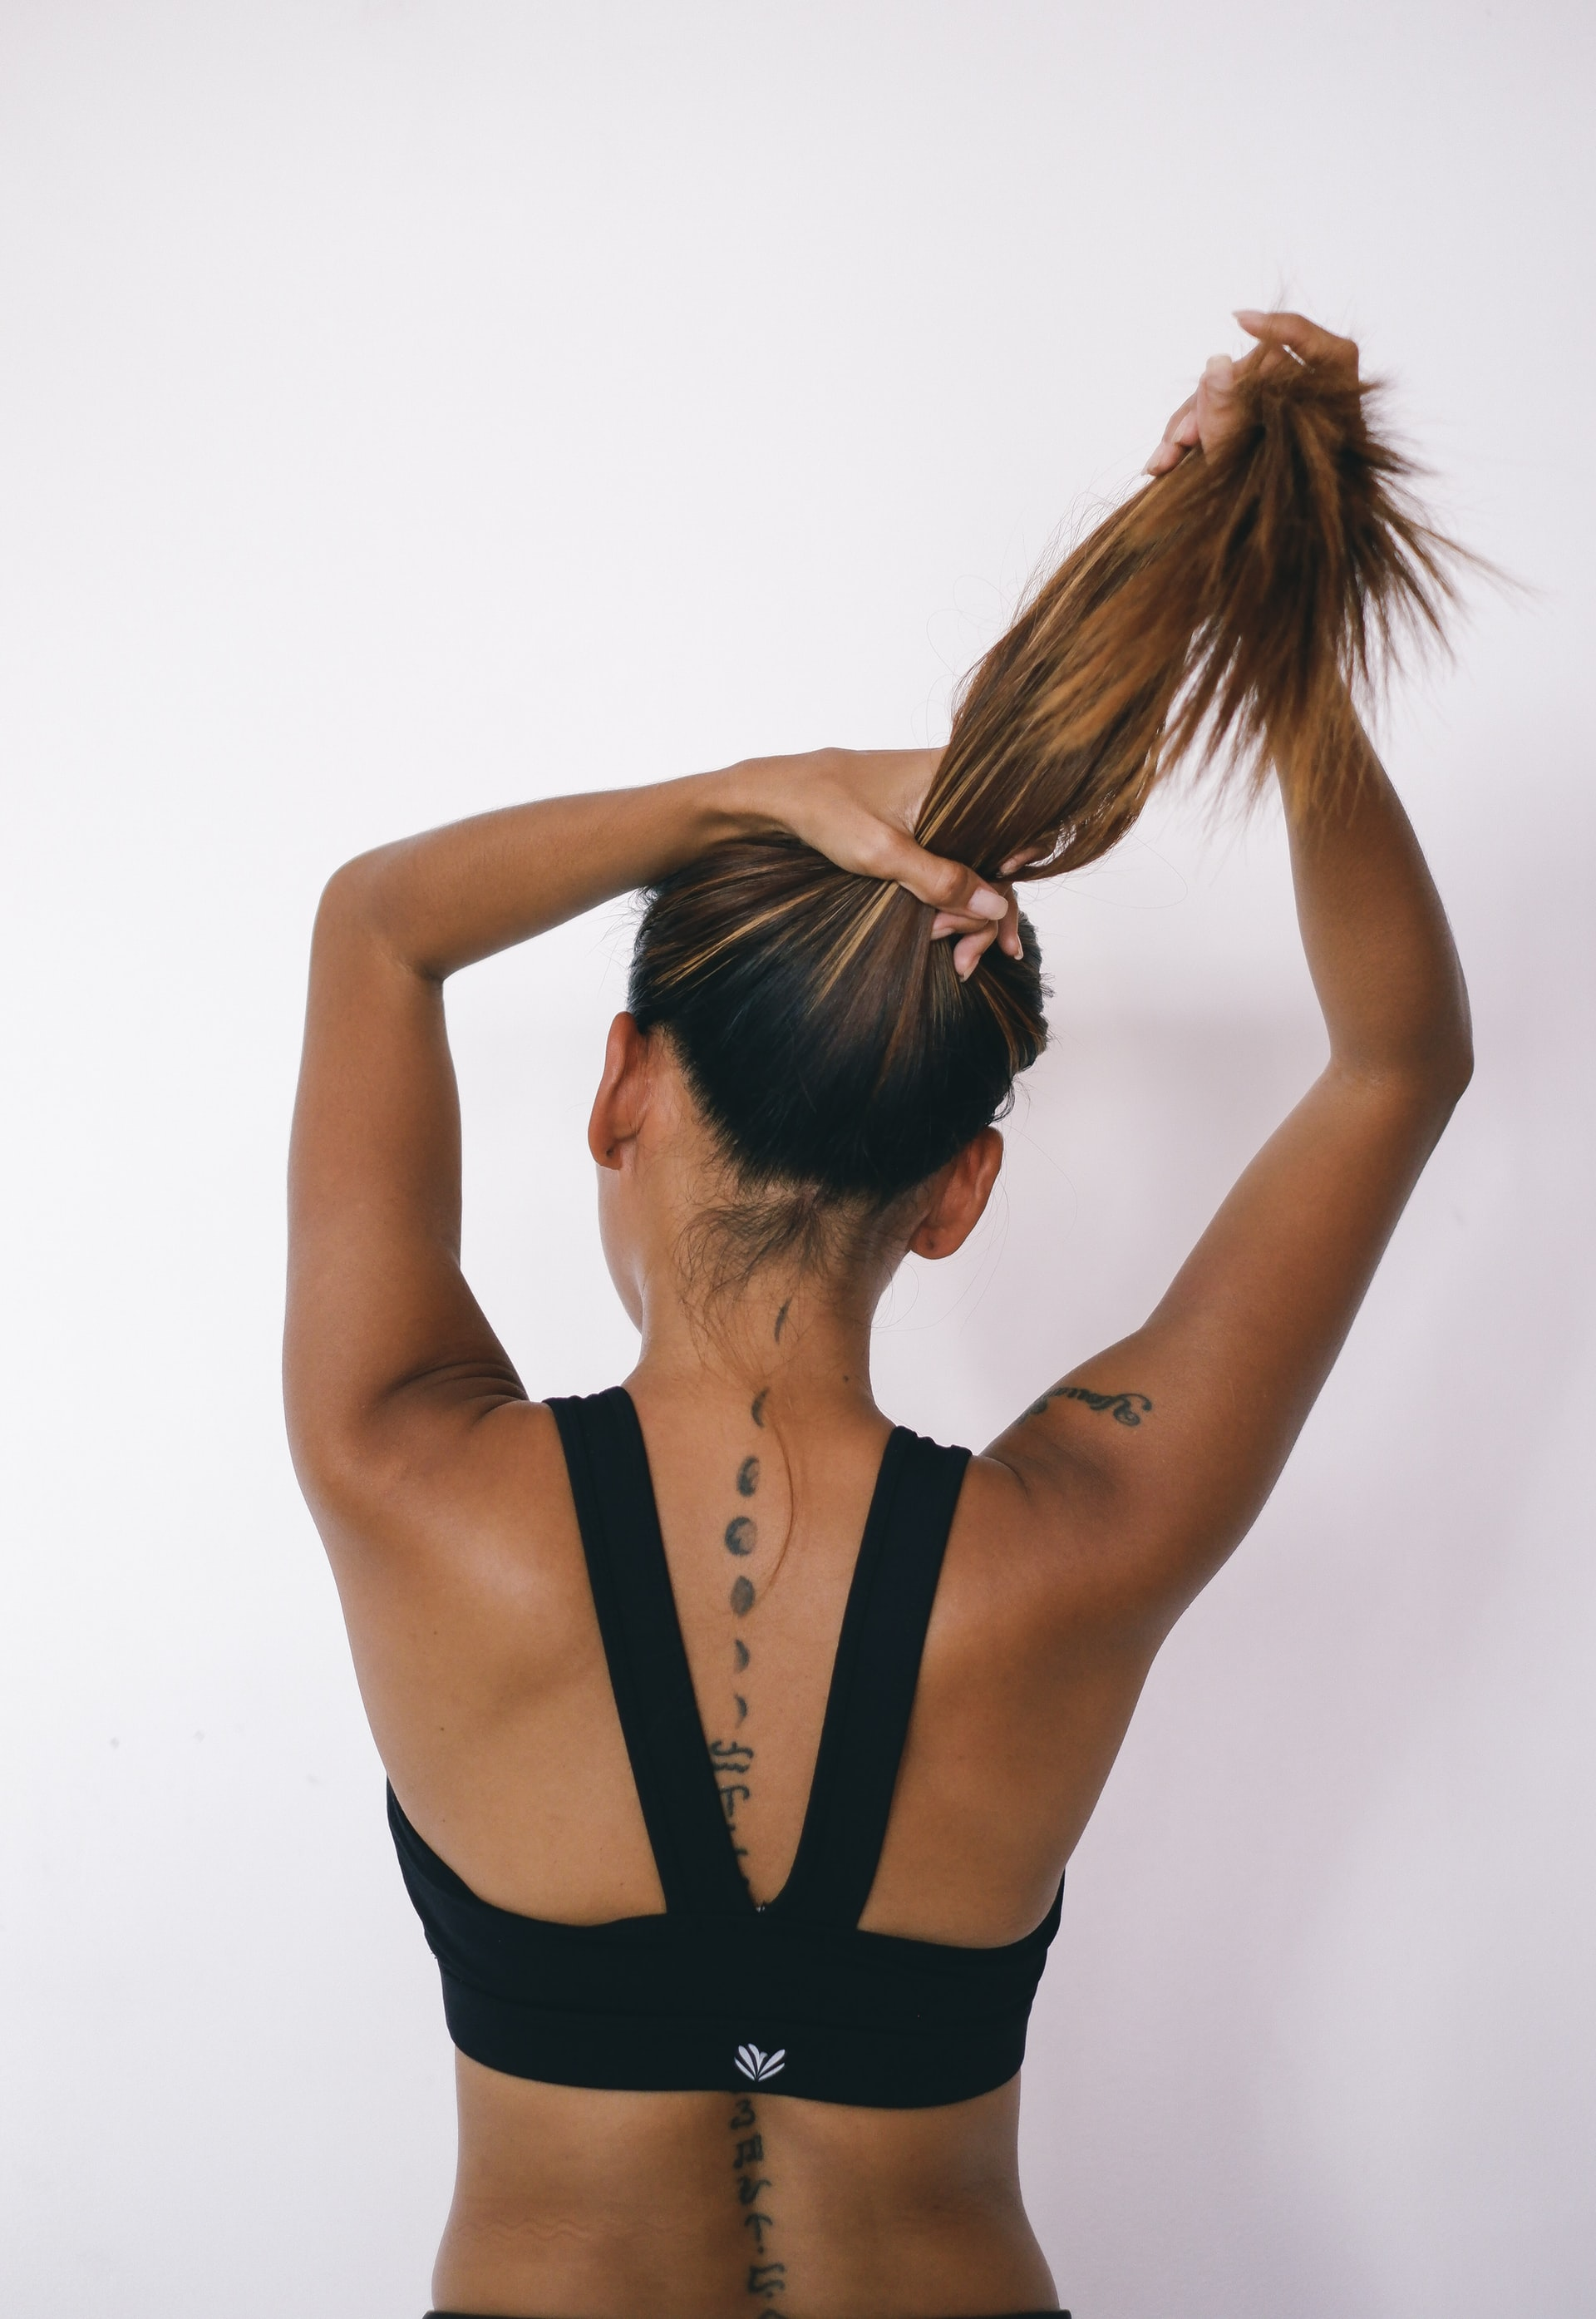 Woman in sports bra putting hair in ponytail